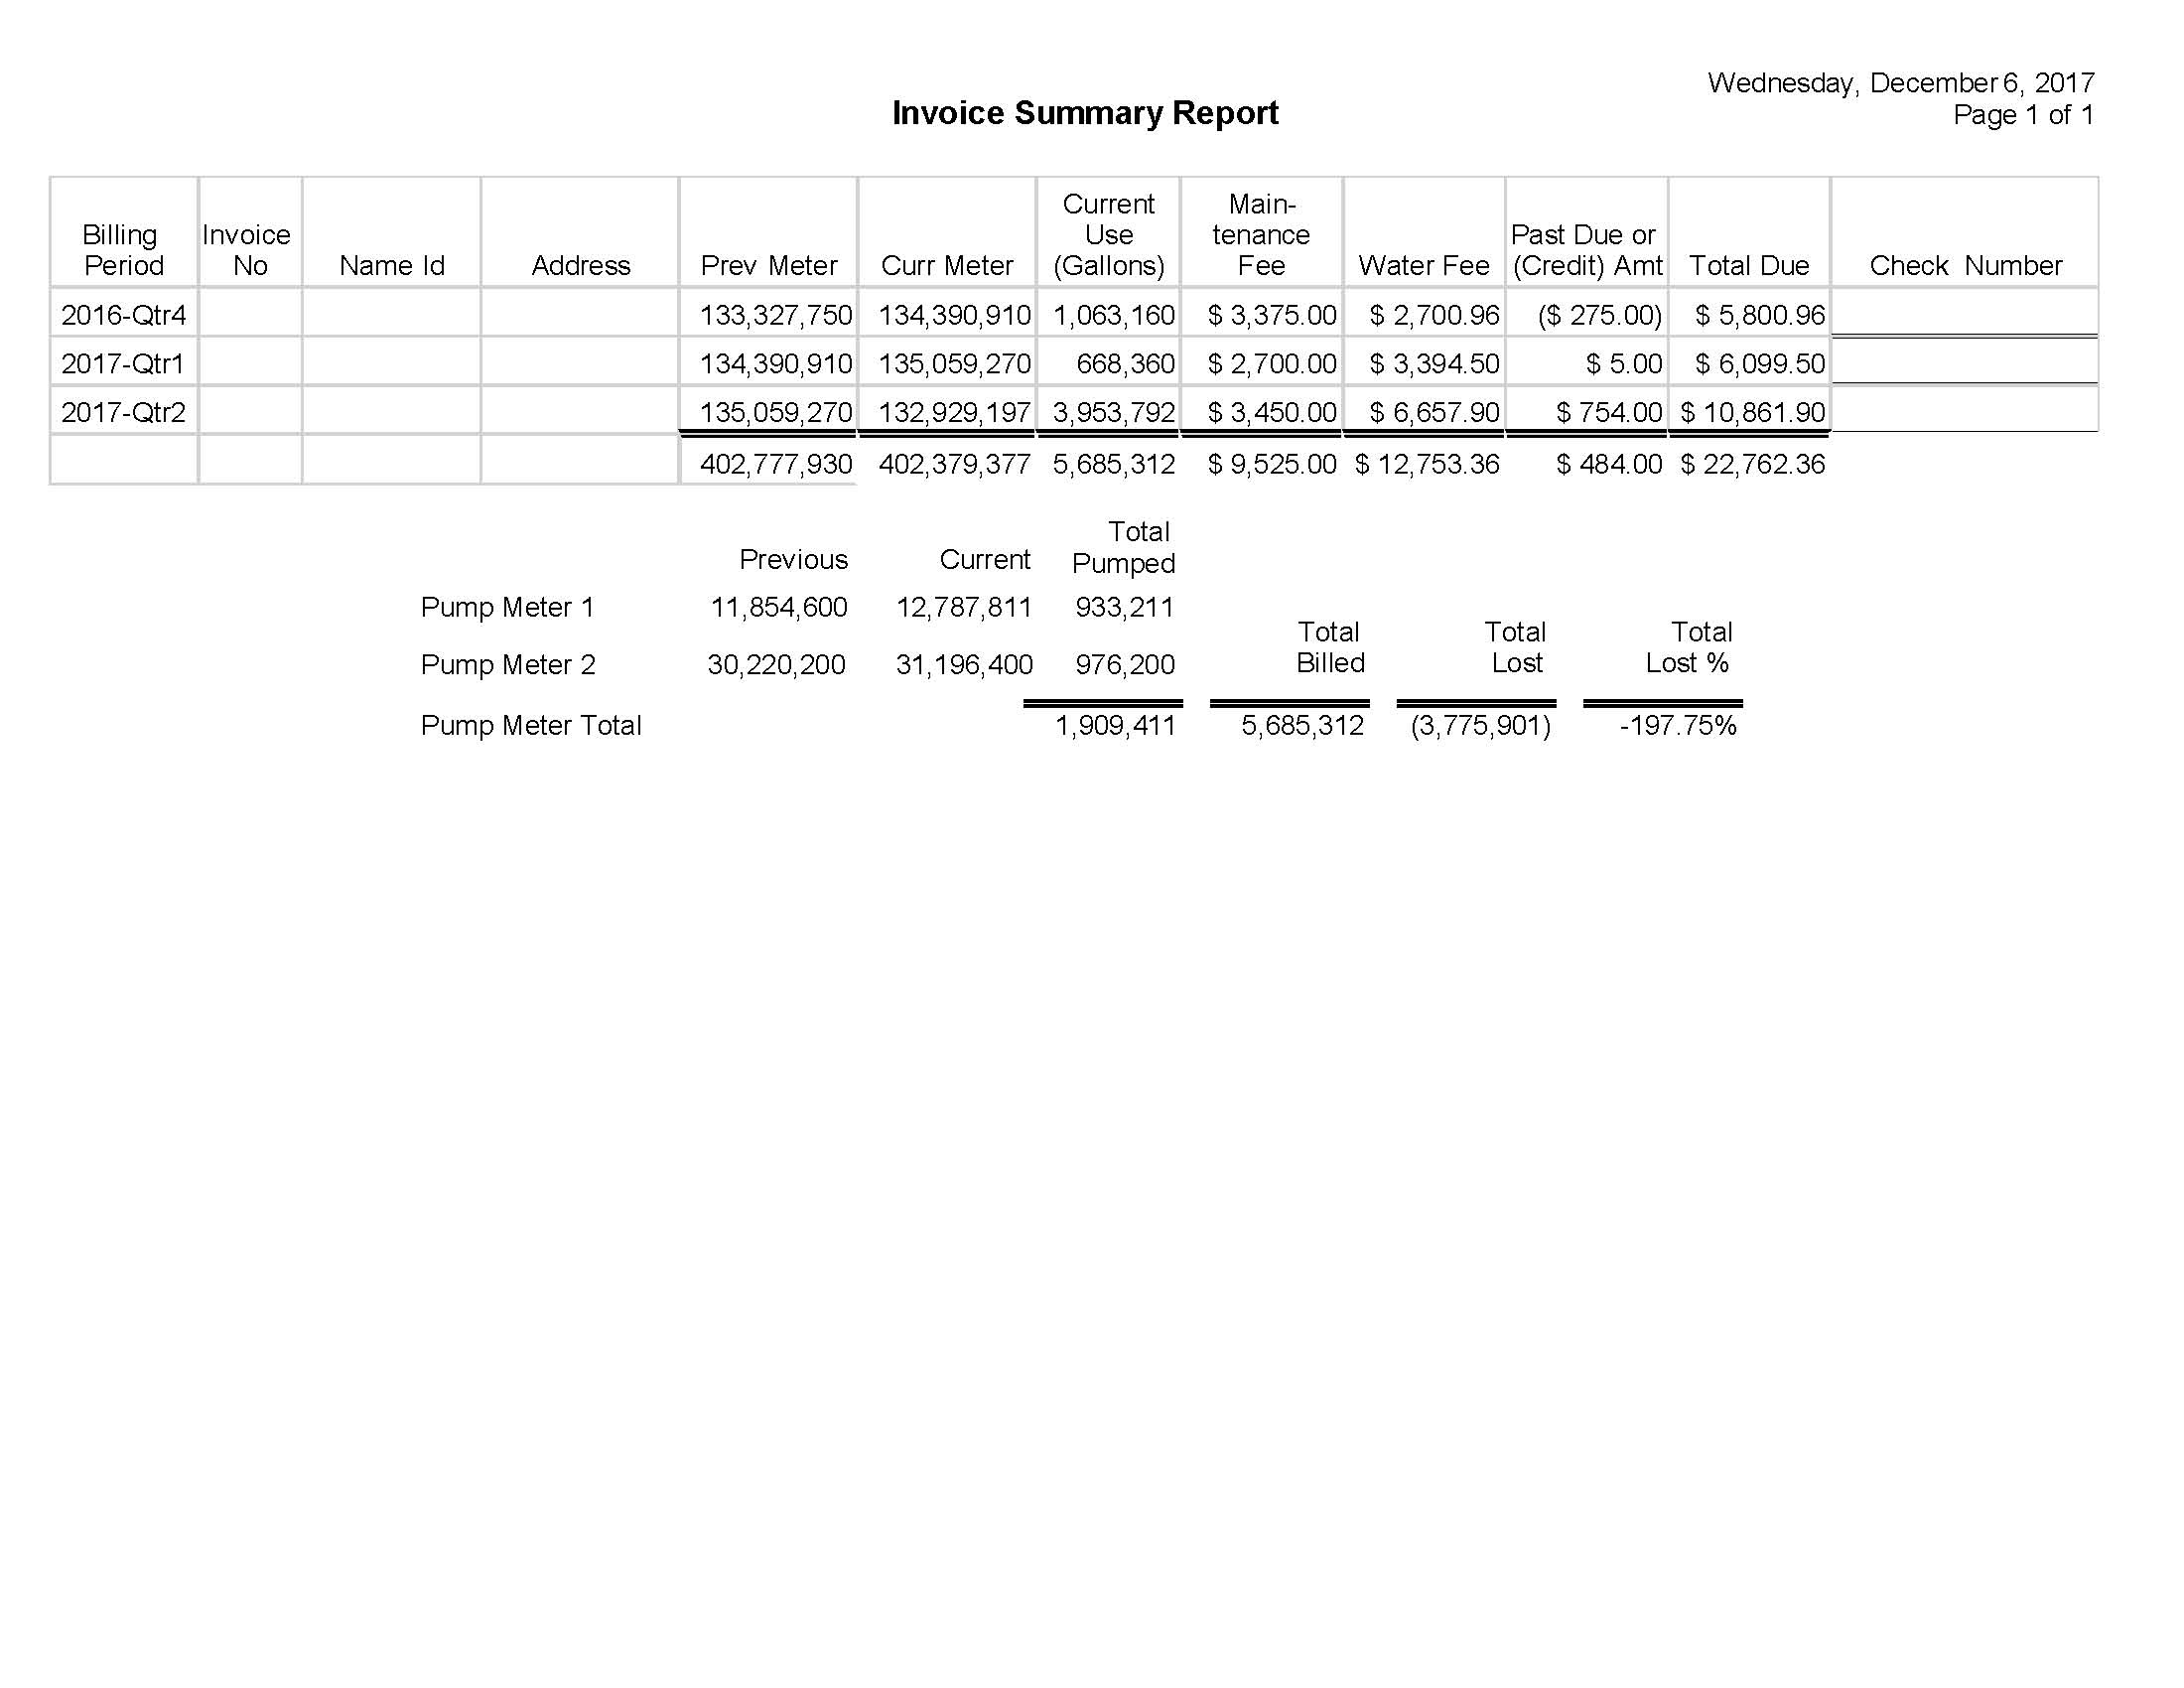 Summary Invoice Report